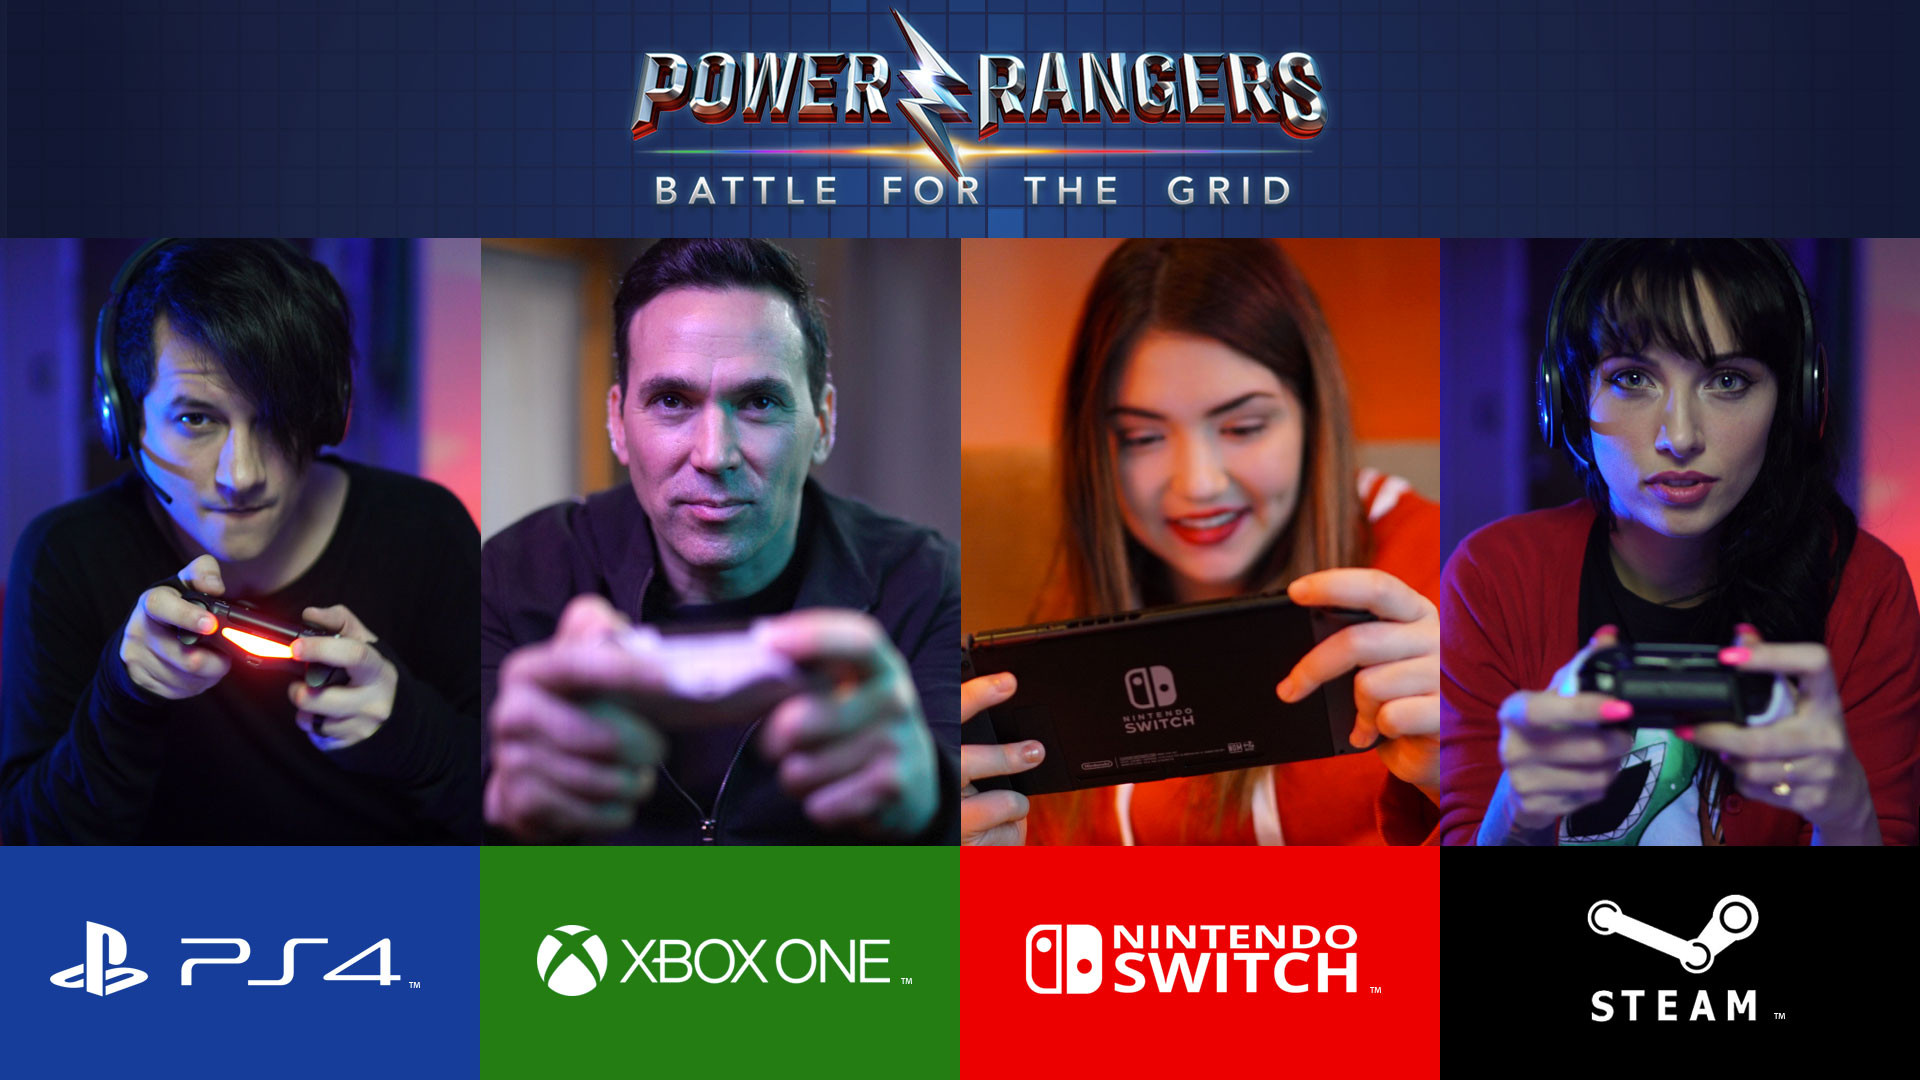 Click image for larger version  Name:	Power Rangers Battle for the Grid Promo Image 1.jpg Views:	1 Size:	338.7 KB ID:	3492571